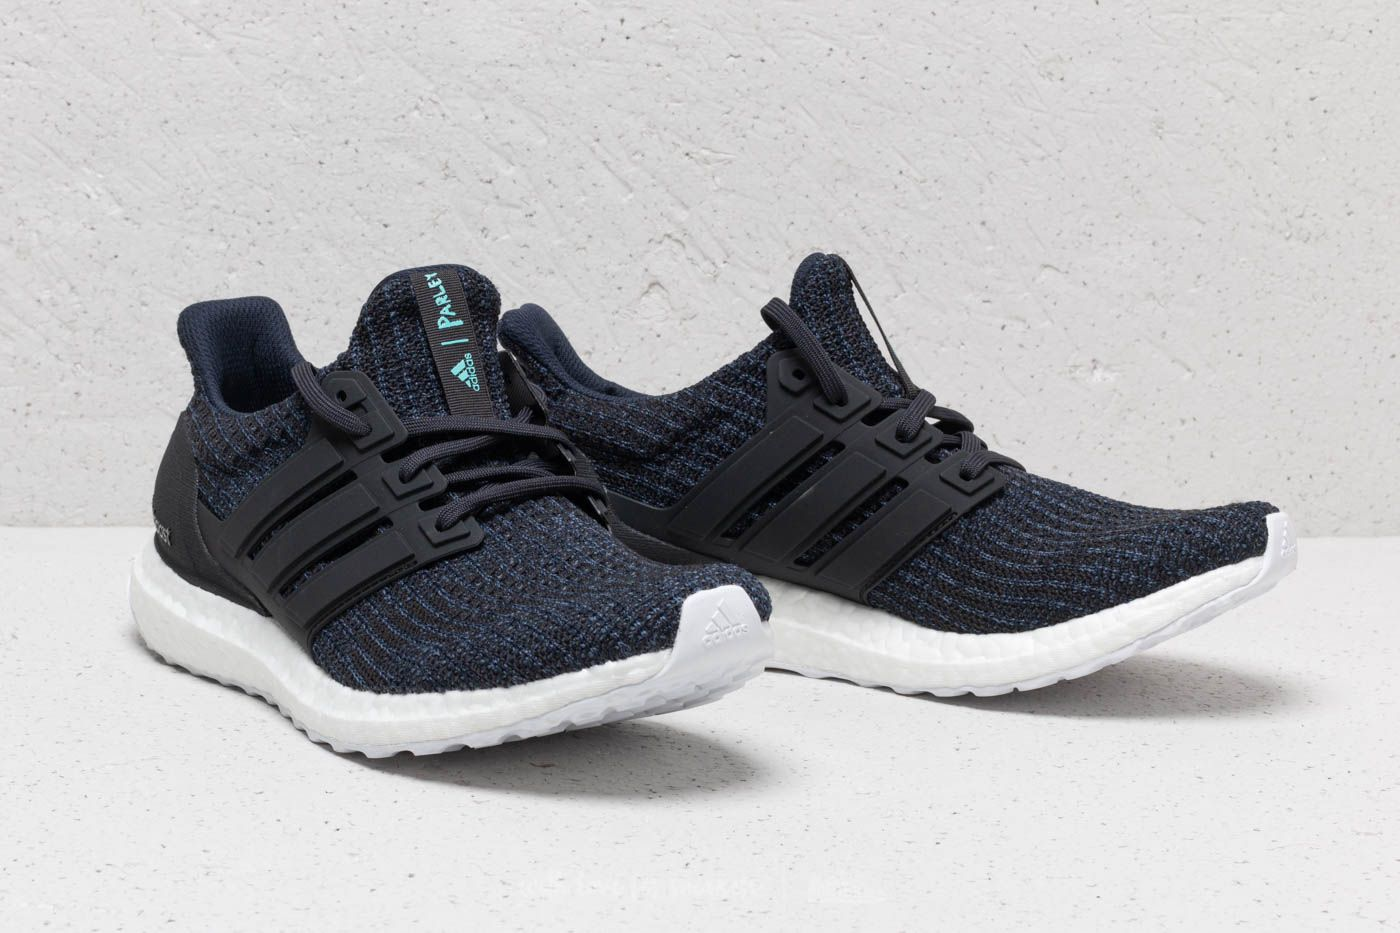 710b02d32997d ... coupon for adidas ultraboost parley legend ink carbon blue spirit at a  great price 156 b8c16